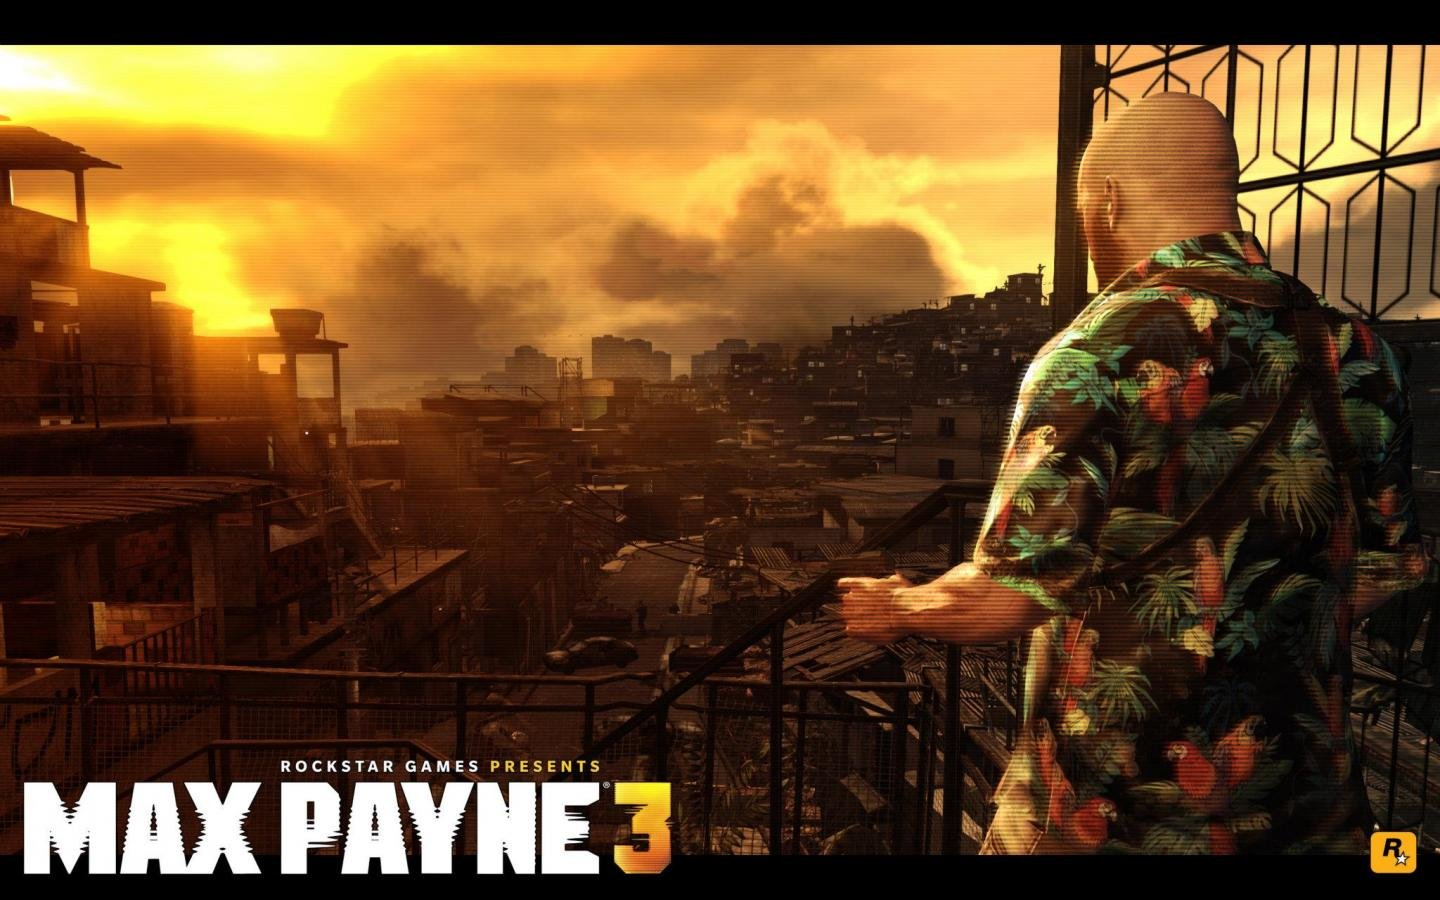 Max Payne 3 Wallpapers Hd For Desktop Backgrounds